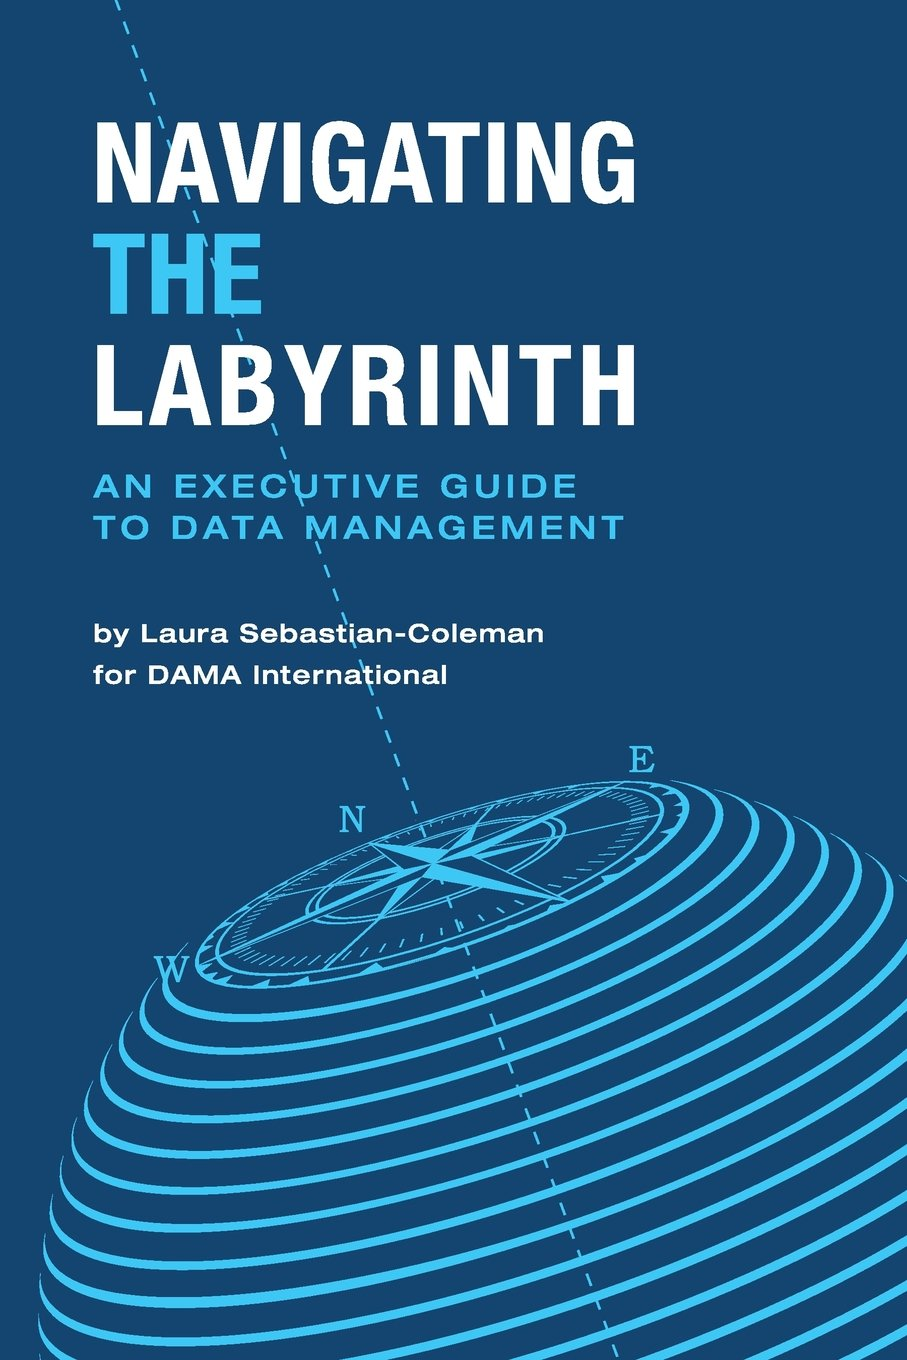 Navigating the Labyrinth: An Executive Guide to Data Management pdf